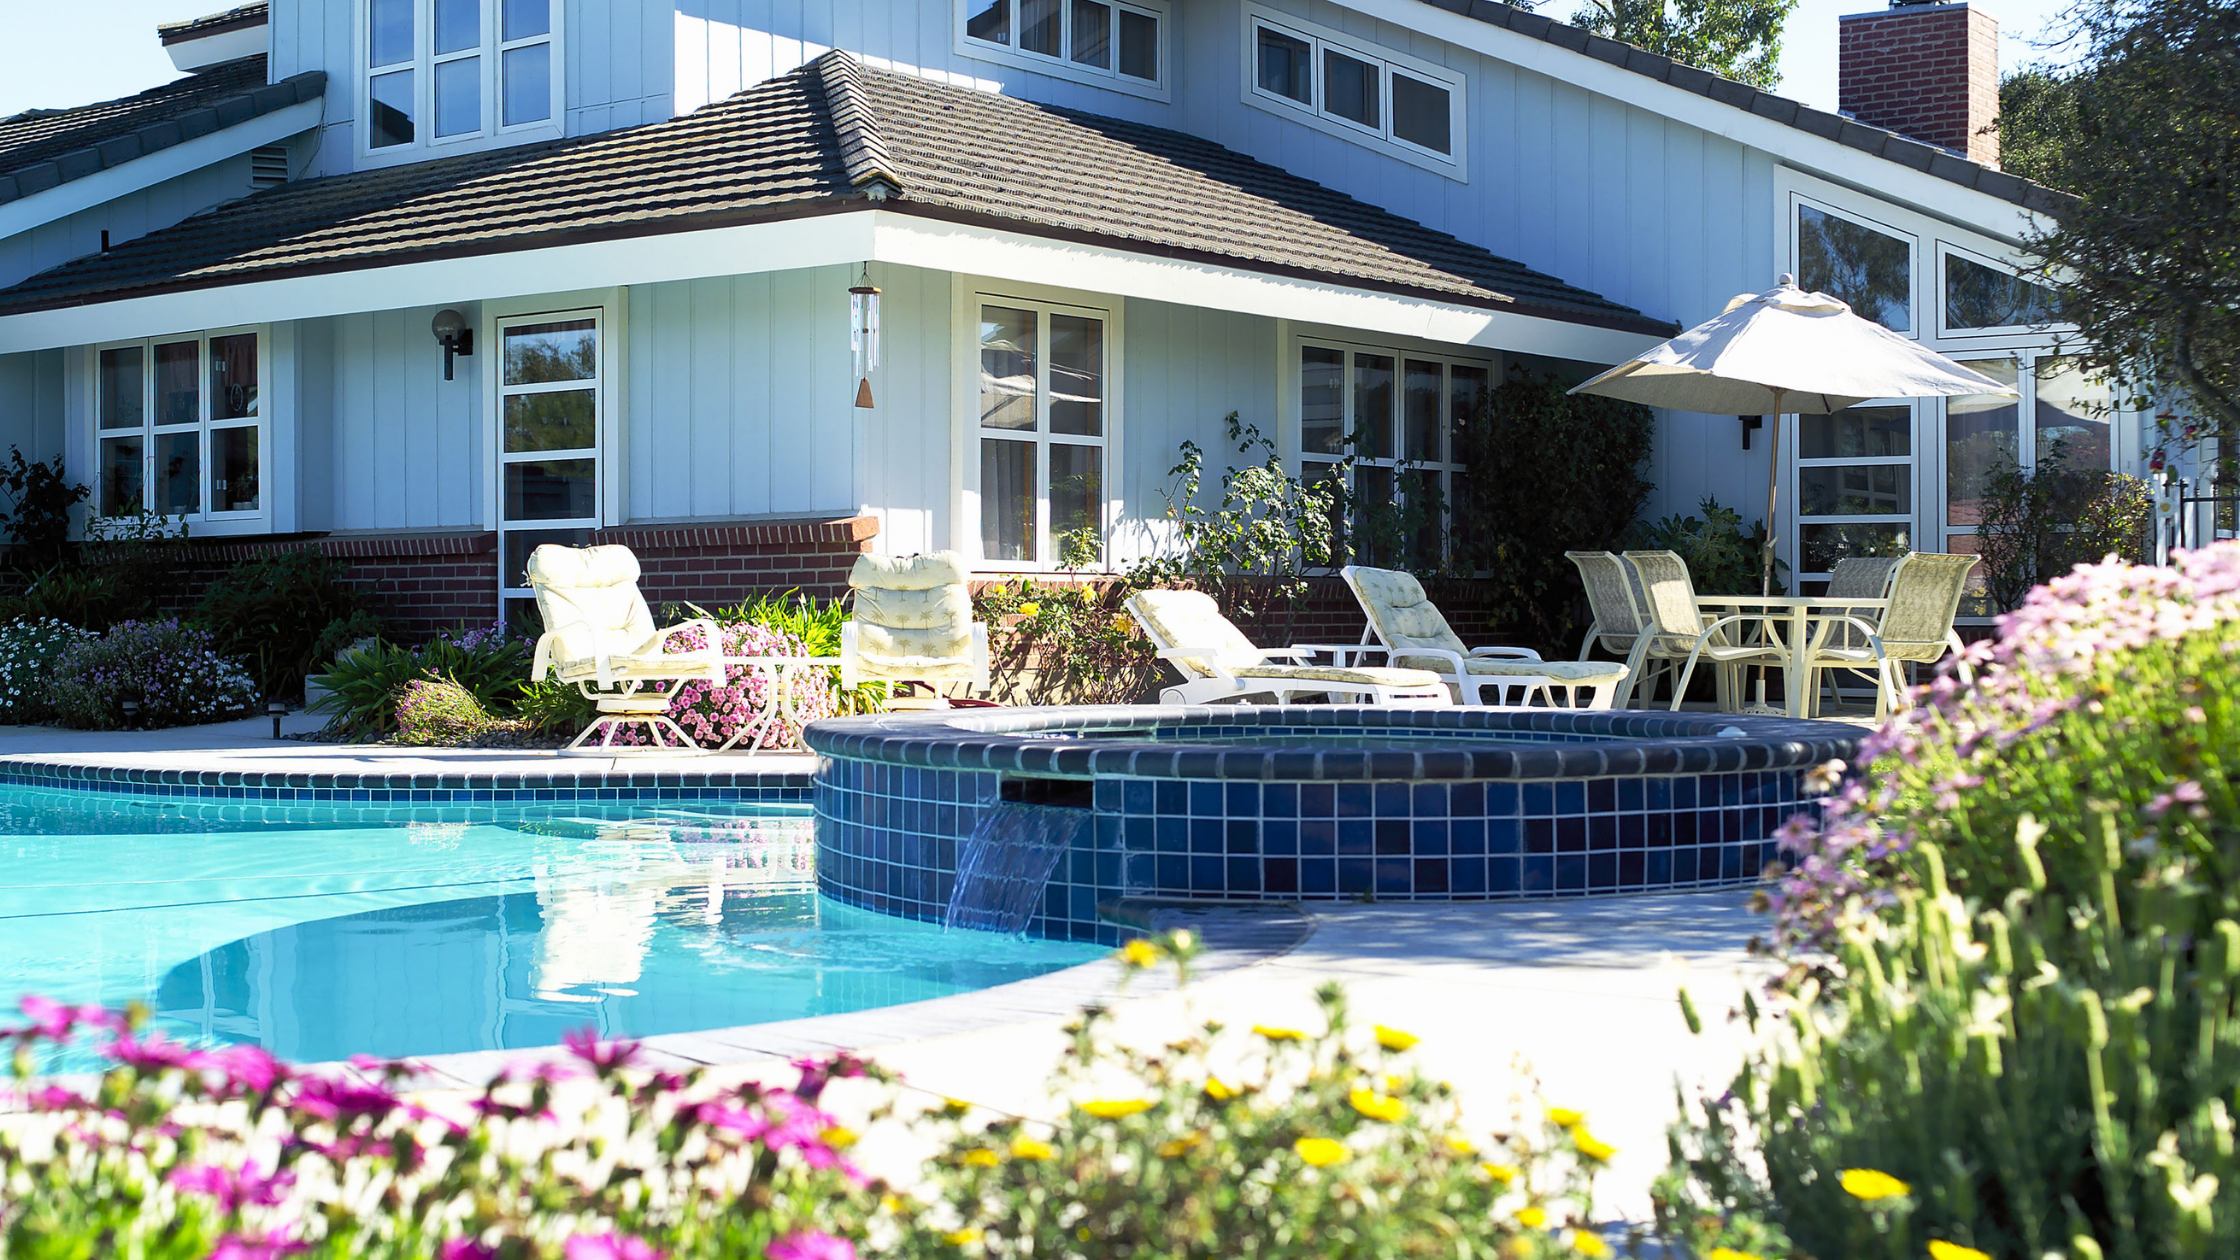 Can Your Pool Cause Foundation Issues?